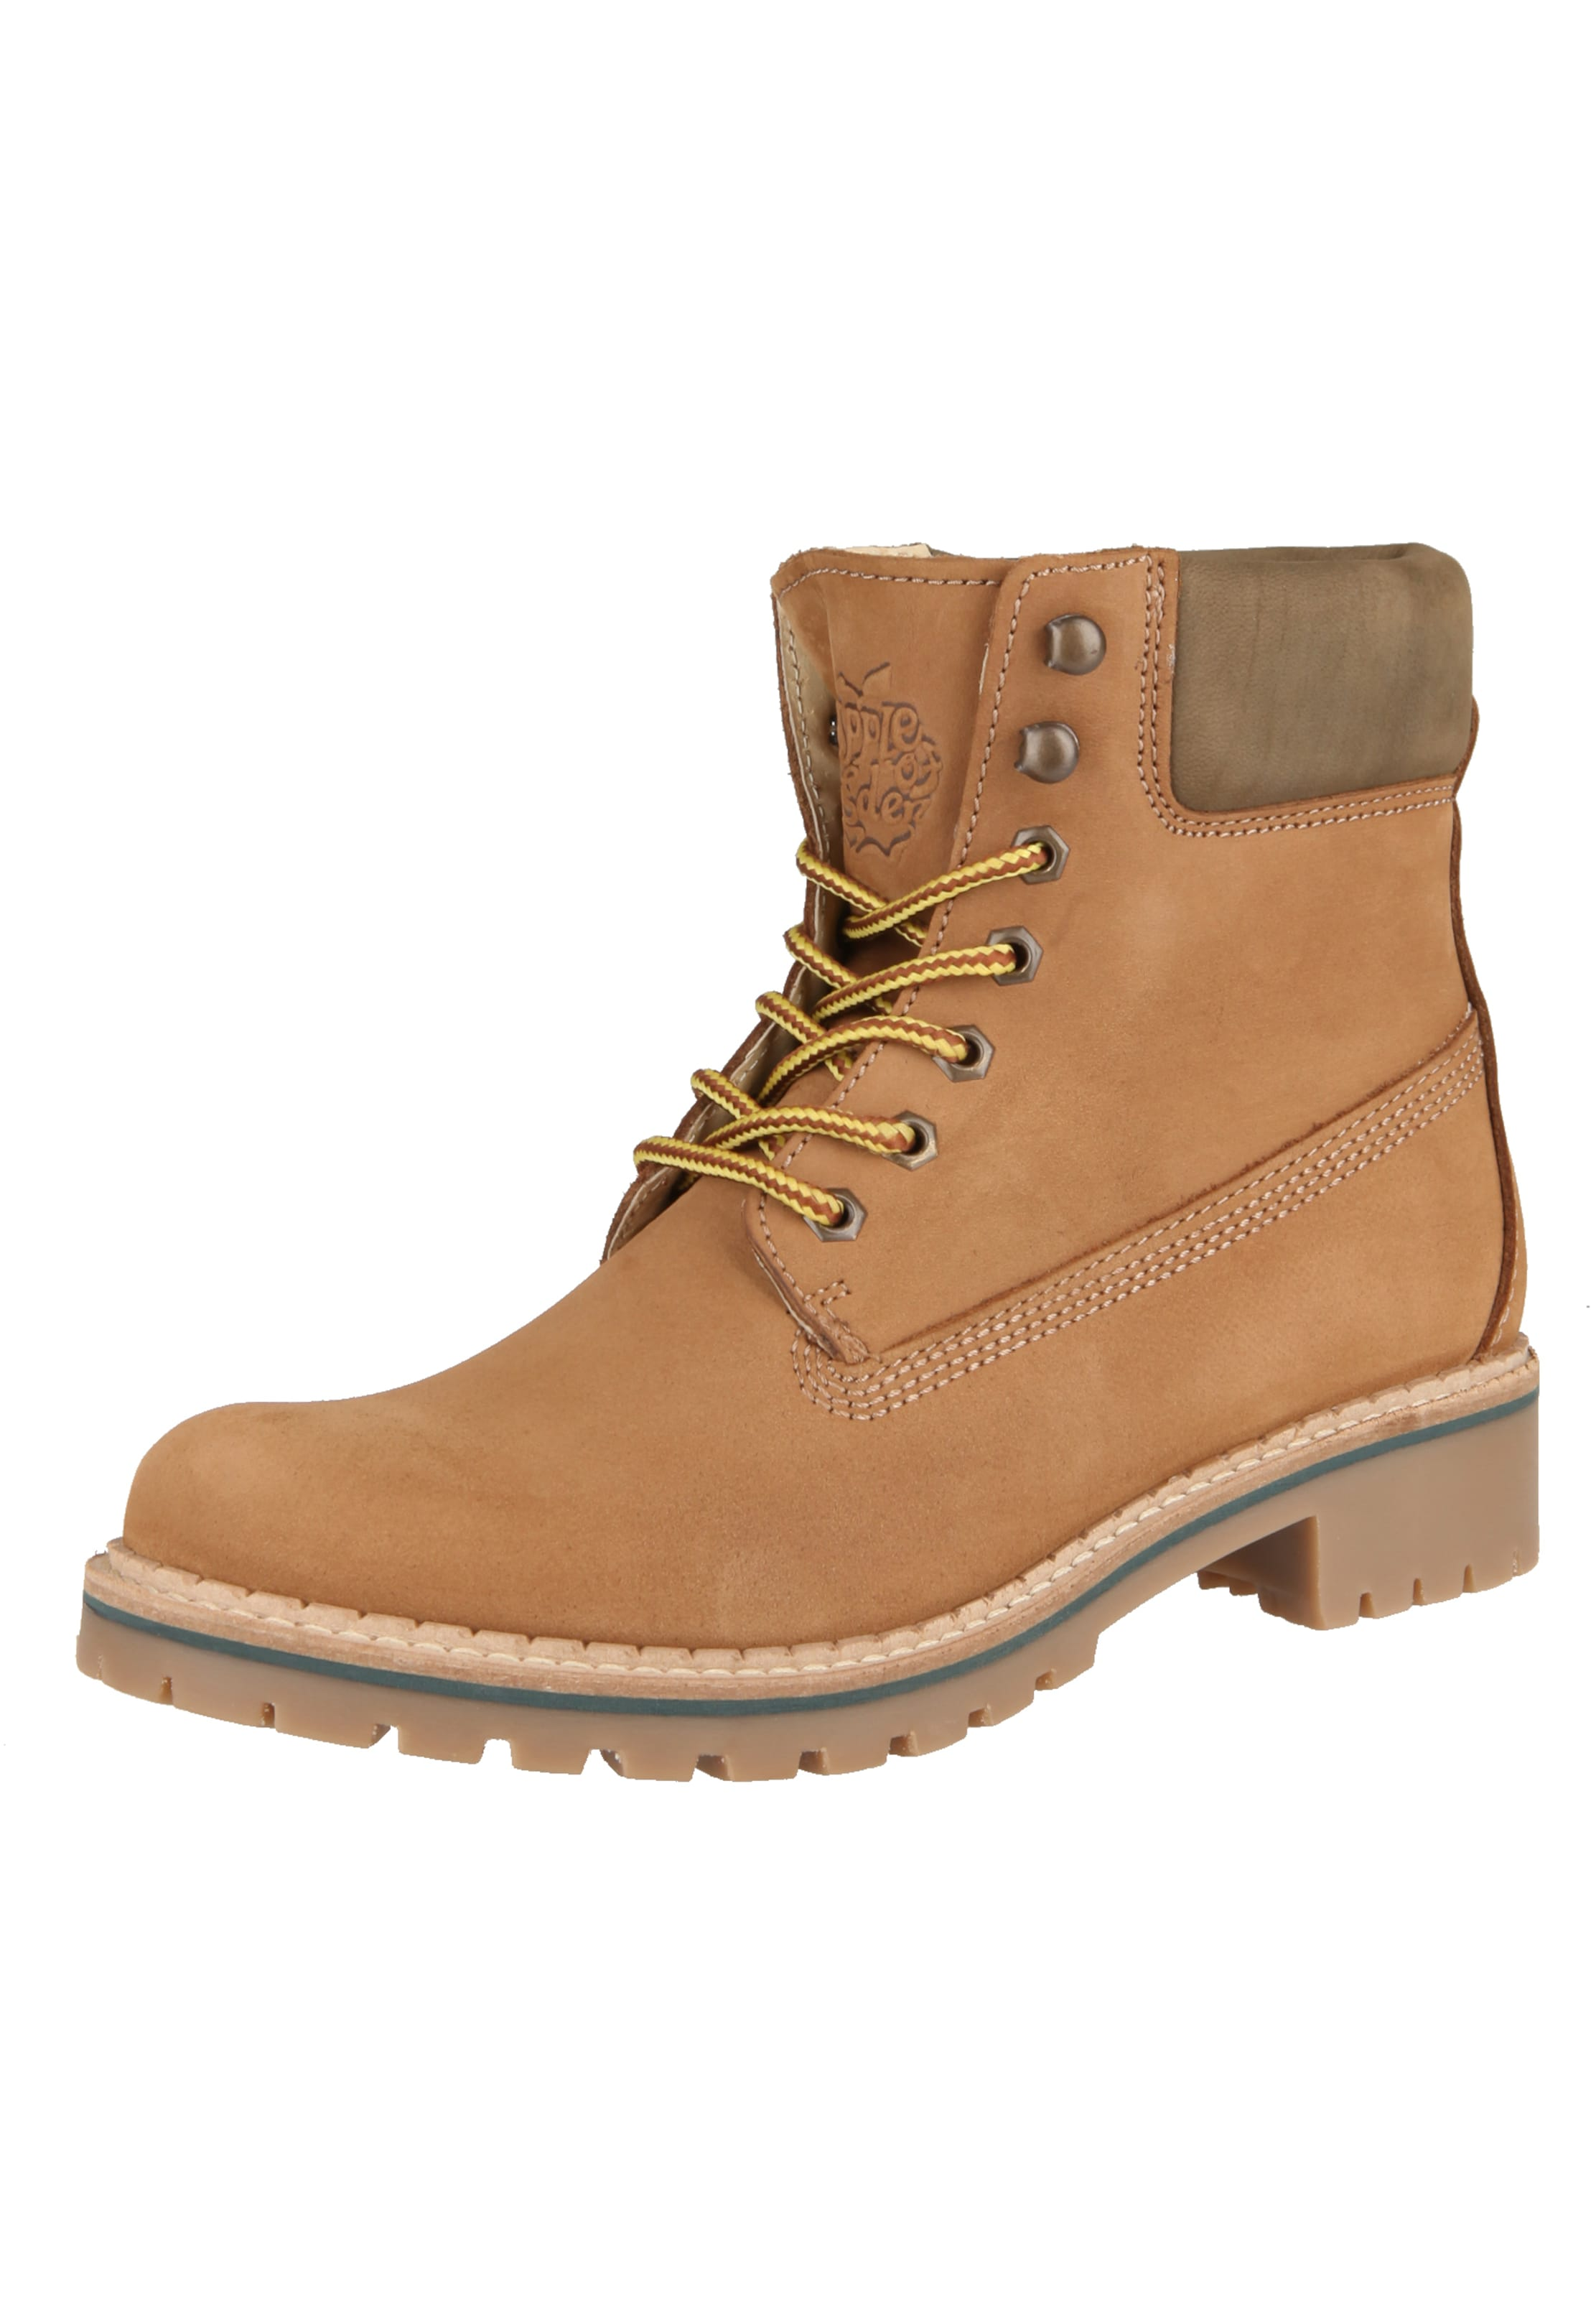 Eden Camel In Apple Boots Of byYf67g